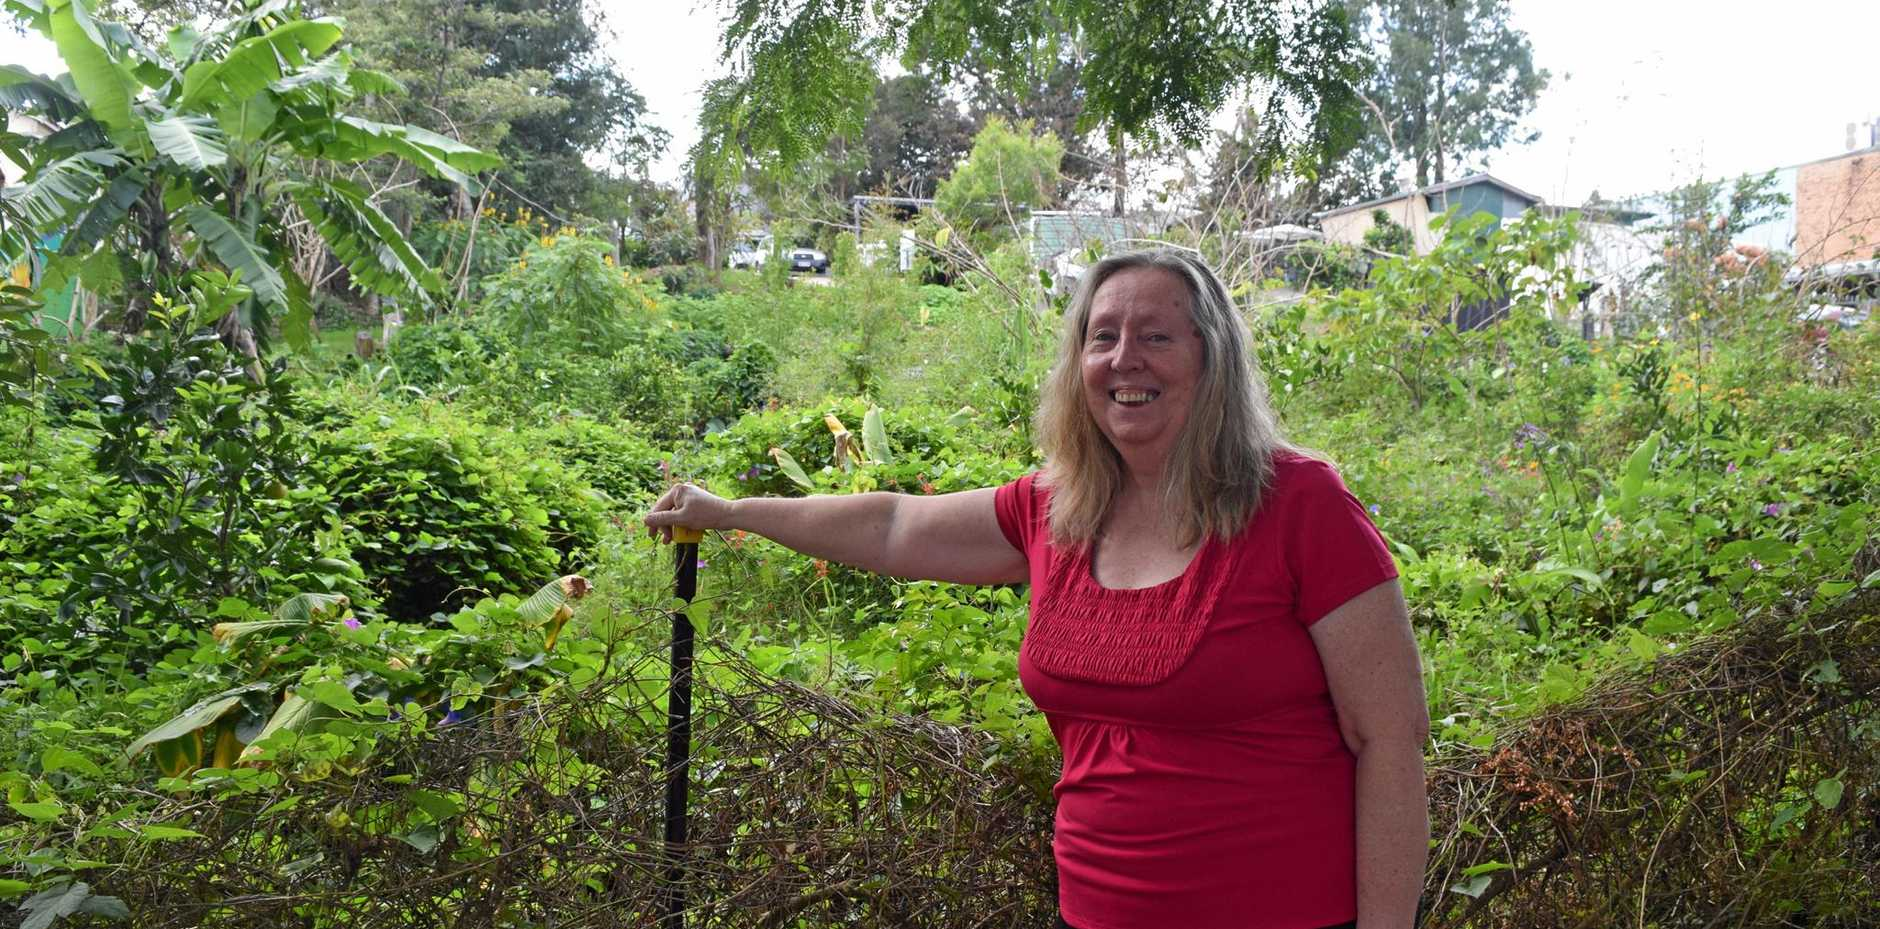 ON SITE: Margaret McKenzie inspects the Bicentennial Lane site of a proposed small home.